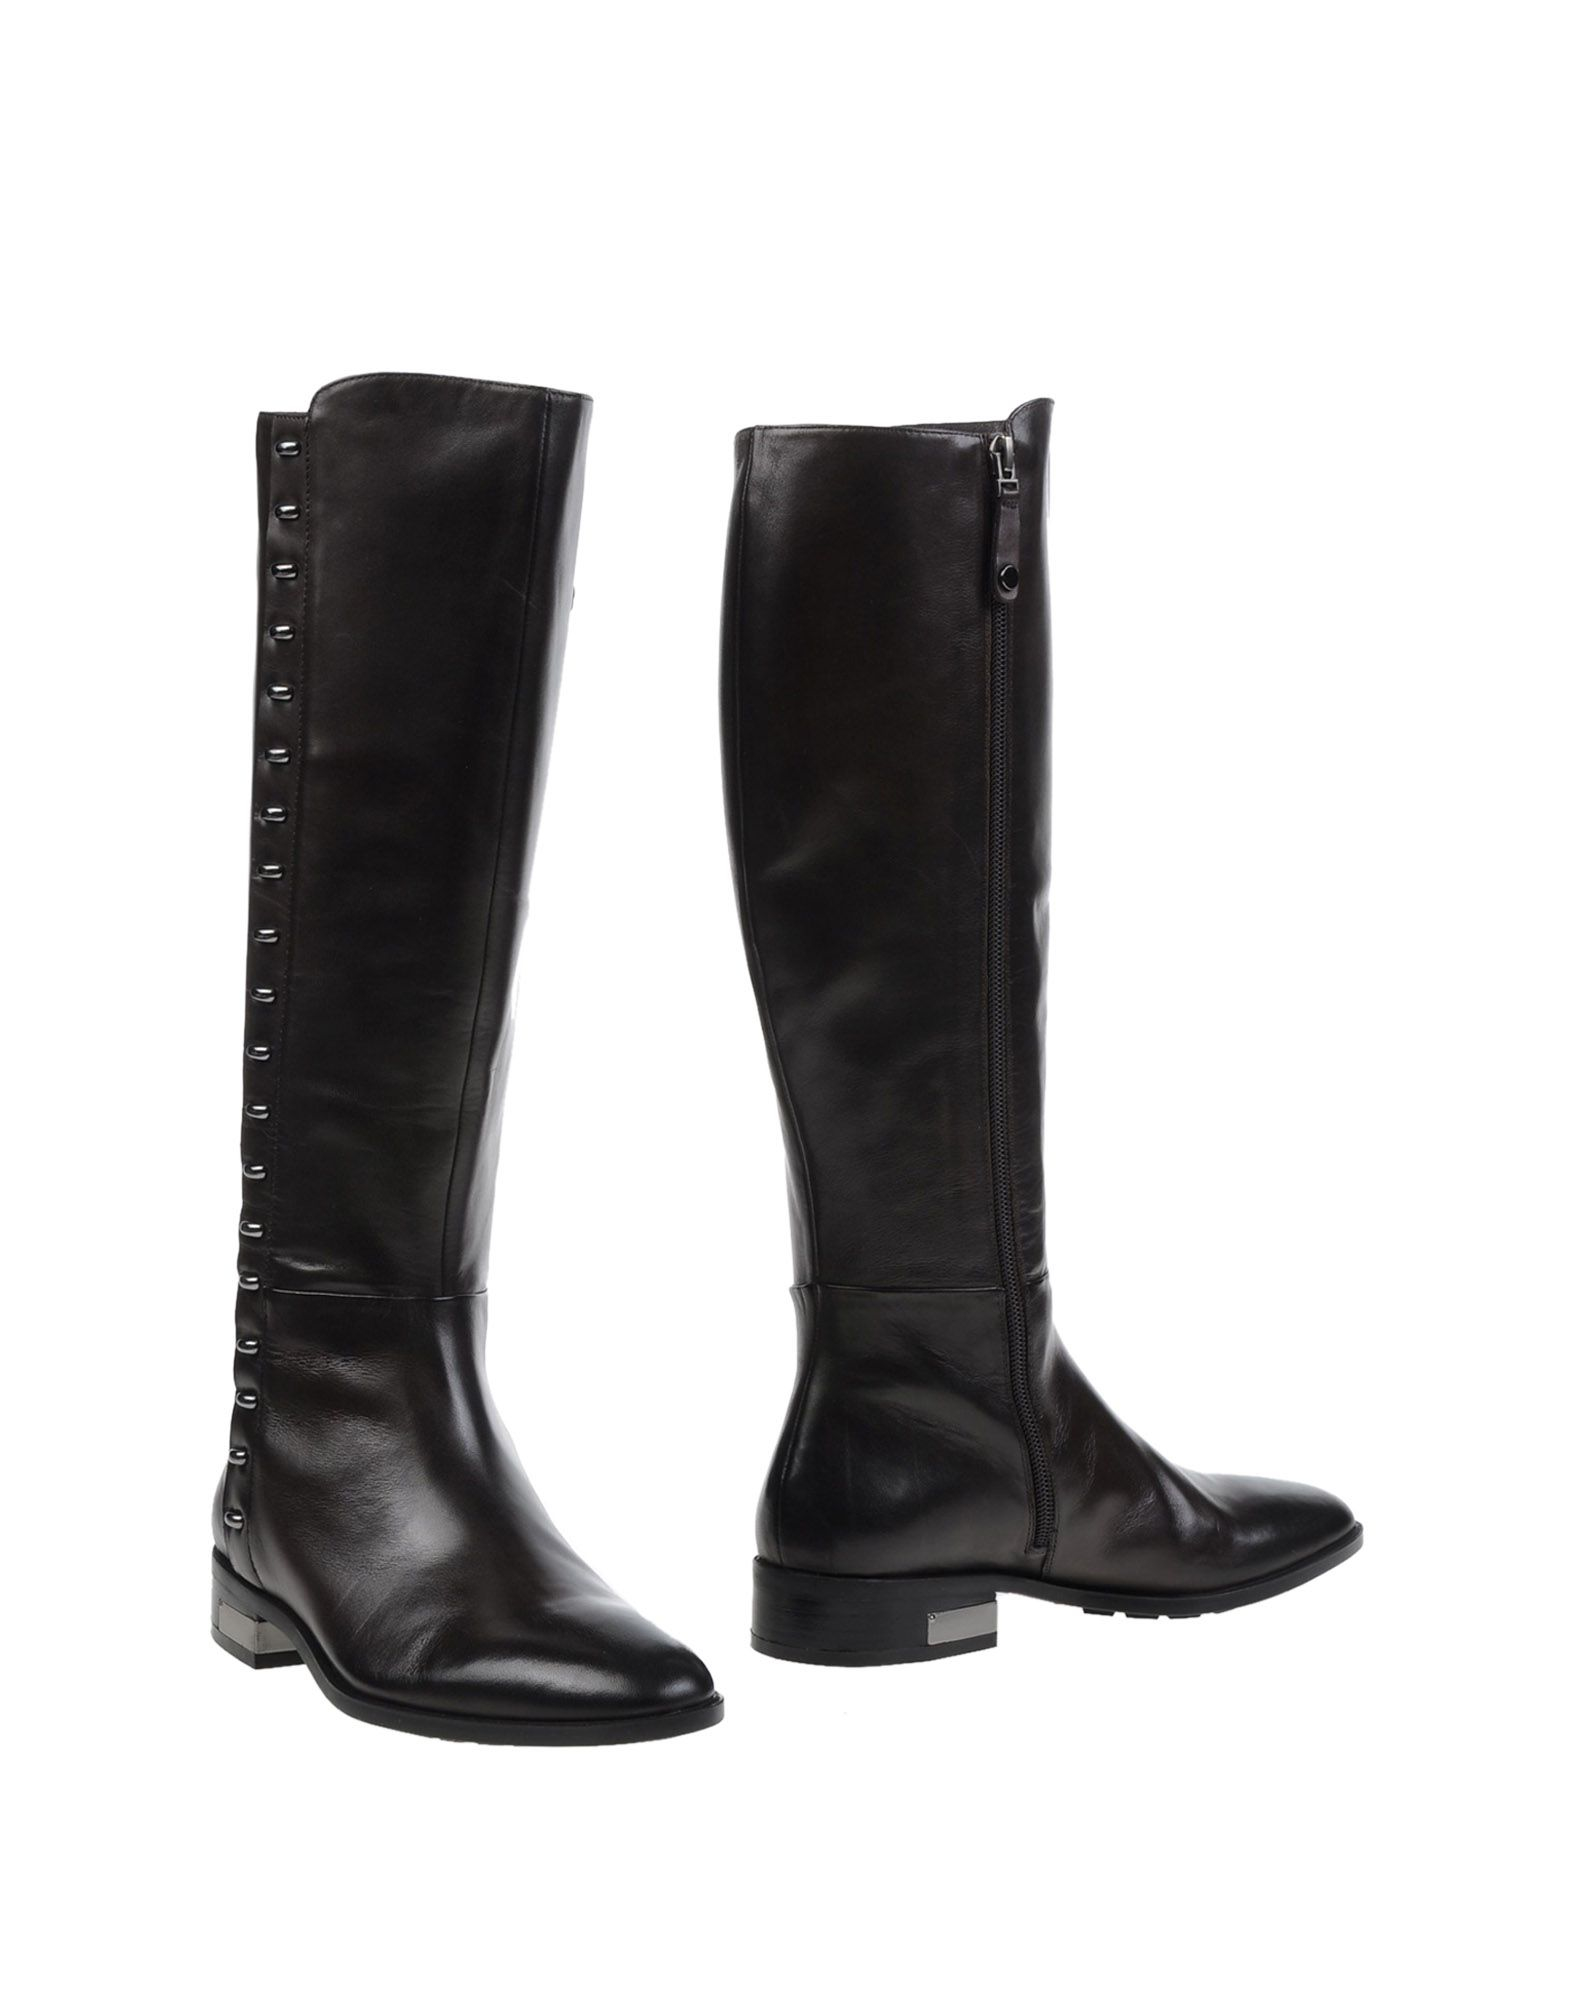 Elvio Zanon Boots In Brown Lyst